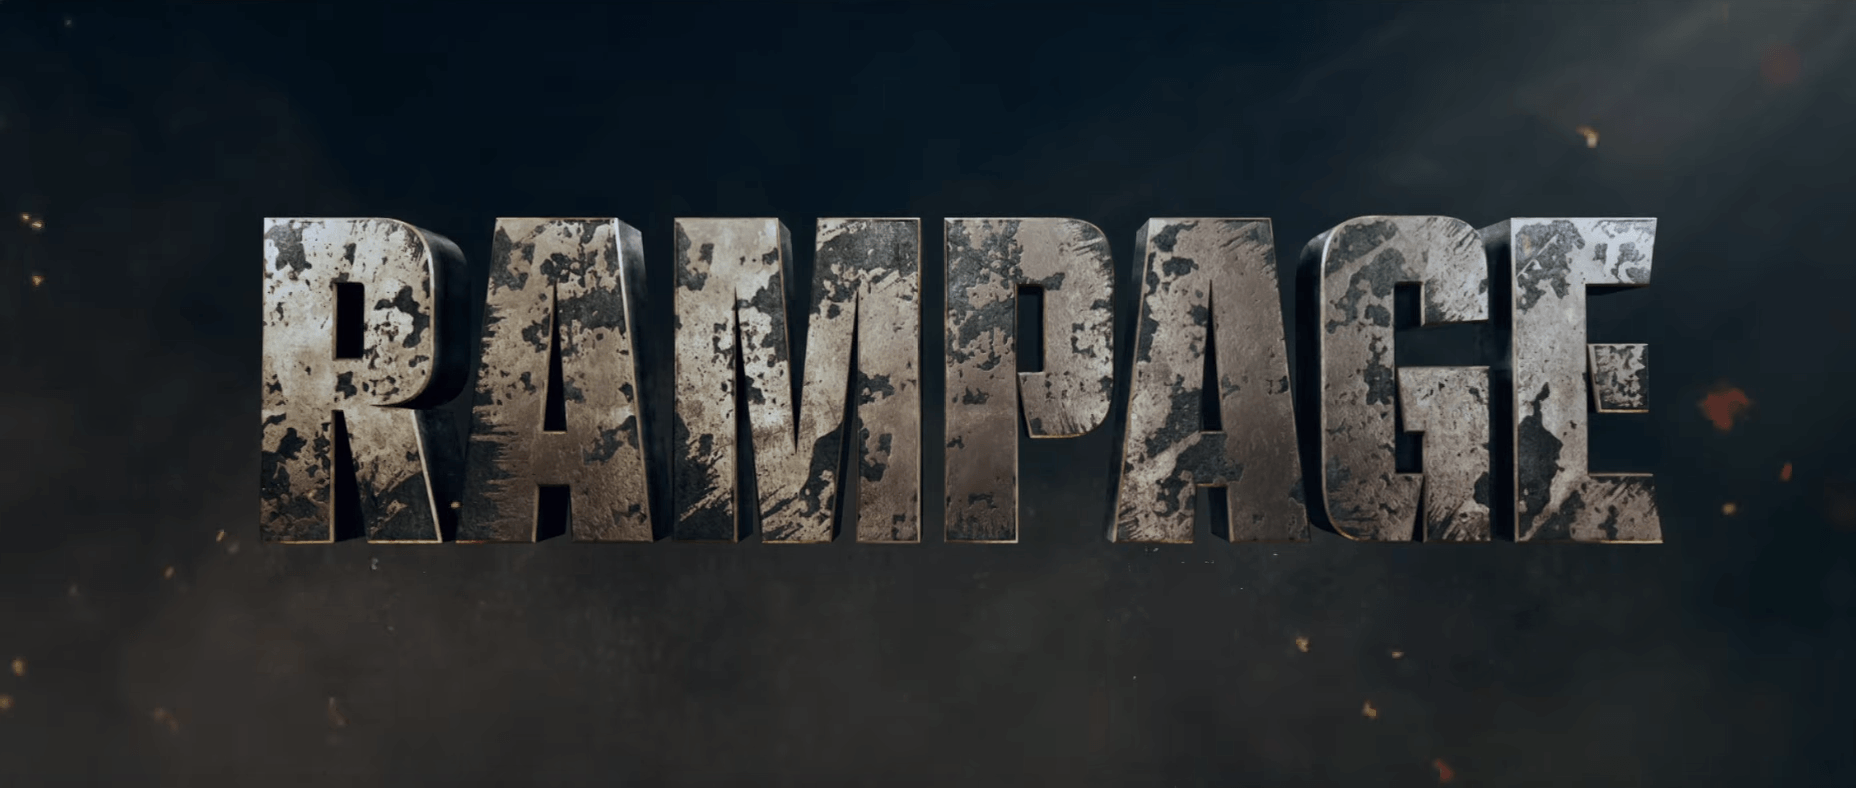 Rampage Movie Hd Wallpapers Download 1080p: Rampage Movie Wallpapers